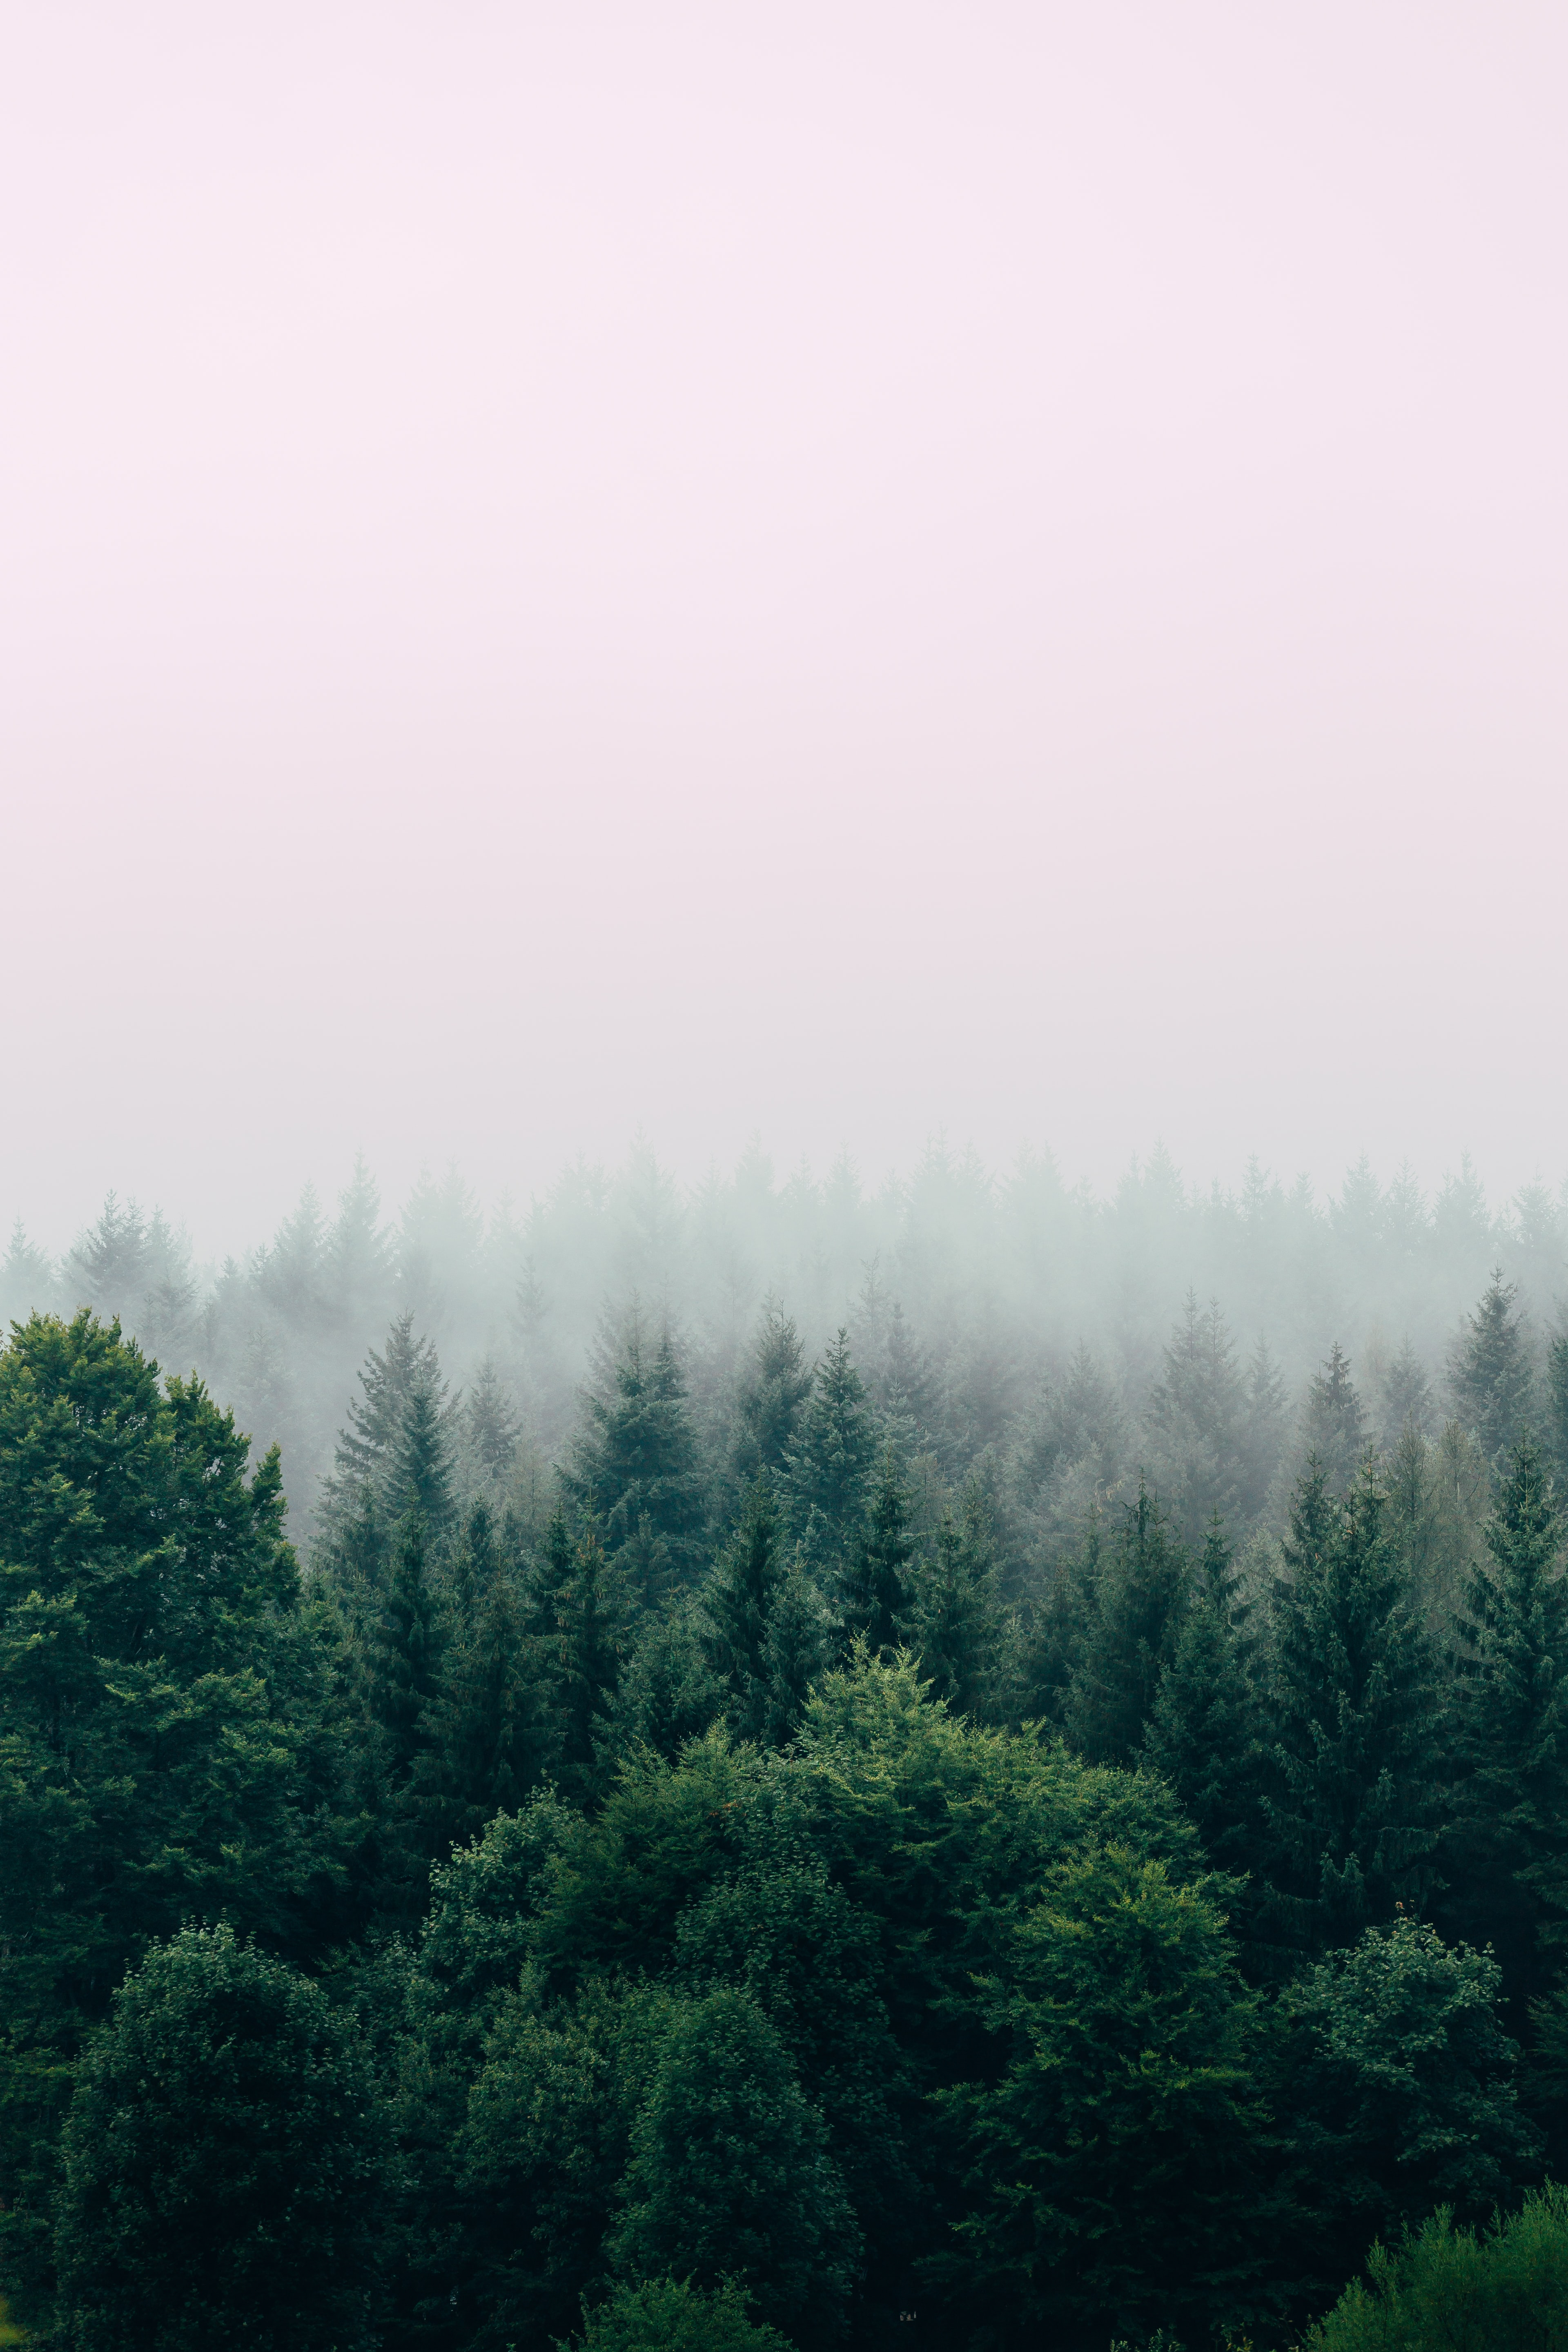 Forest Wallpapers: Free HD Download [500+ HQ]  Unsplash